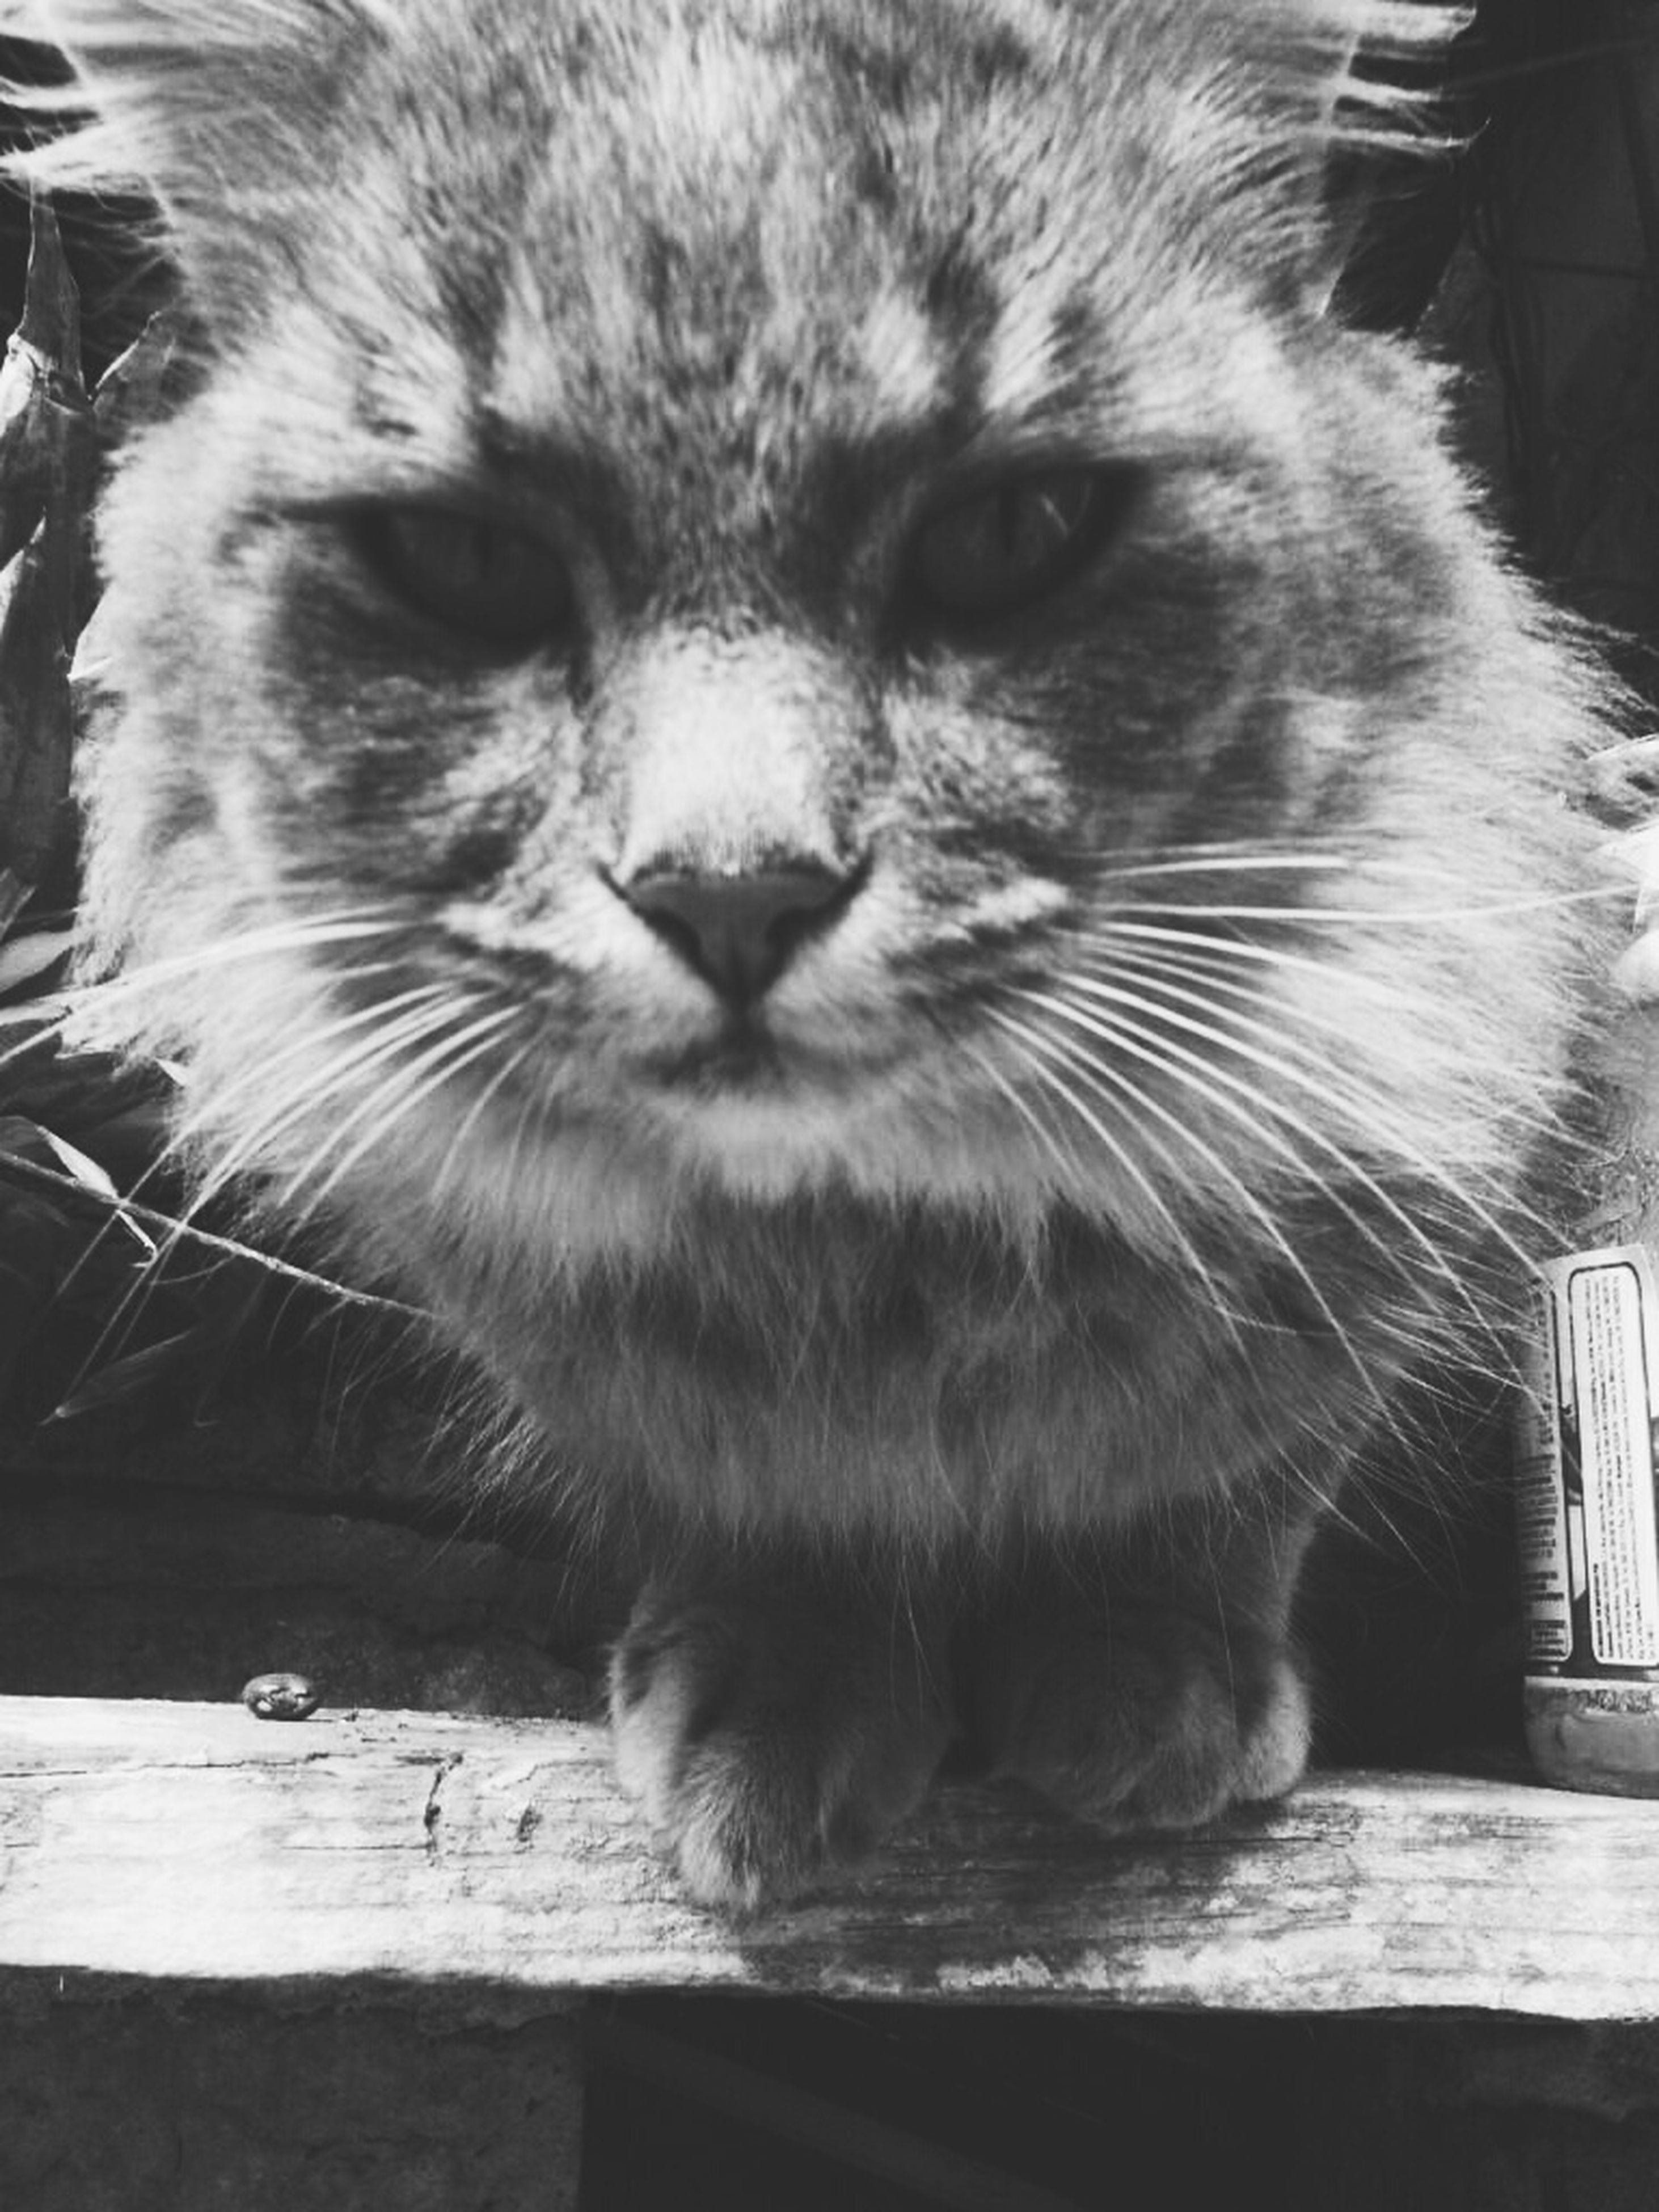 one animal, animal themes, mammal, pets, domestic animals, domestic cat, cat, feline, whisker, indoors, close-up, relaxation, animal head, looking away, portrait, sitting, focus on foreground, no people, wood - material